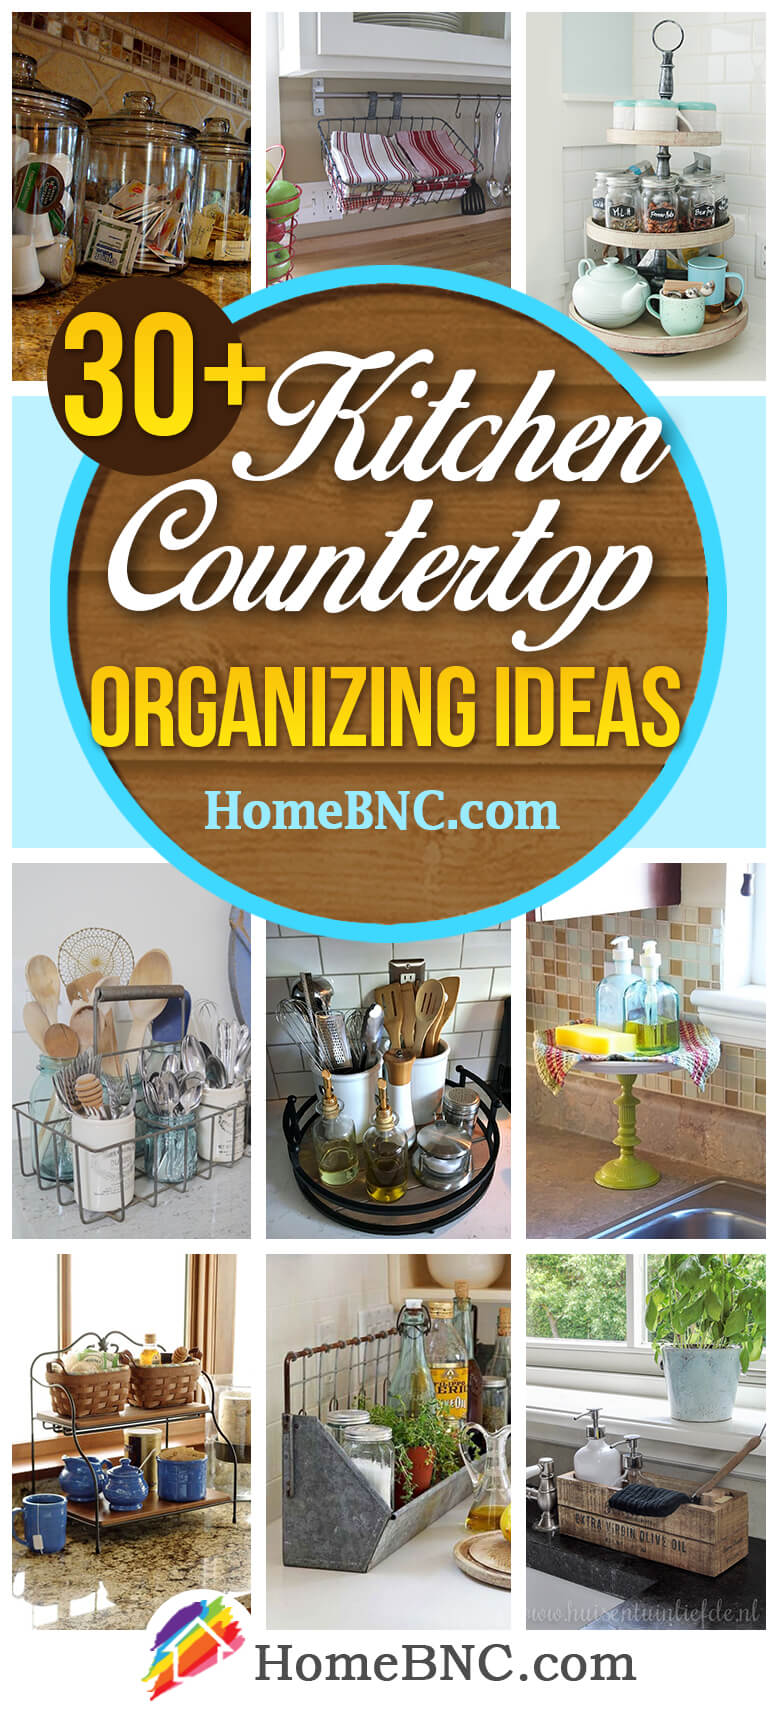 Kitchen Countertop Organizing Ideas